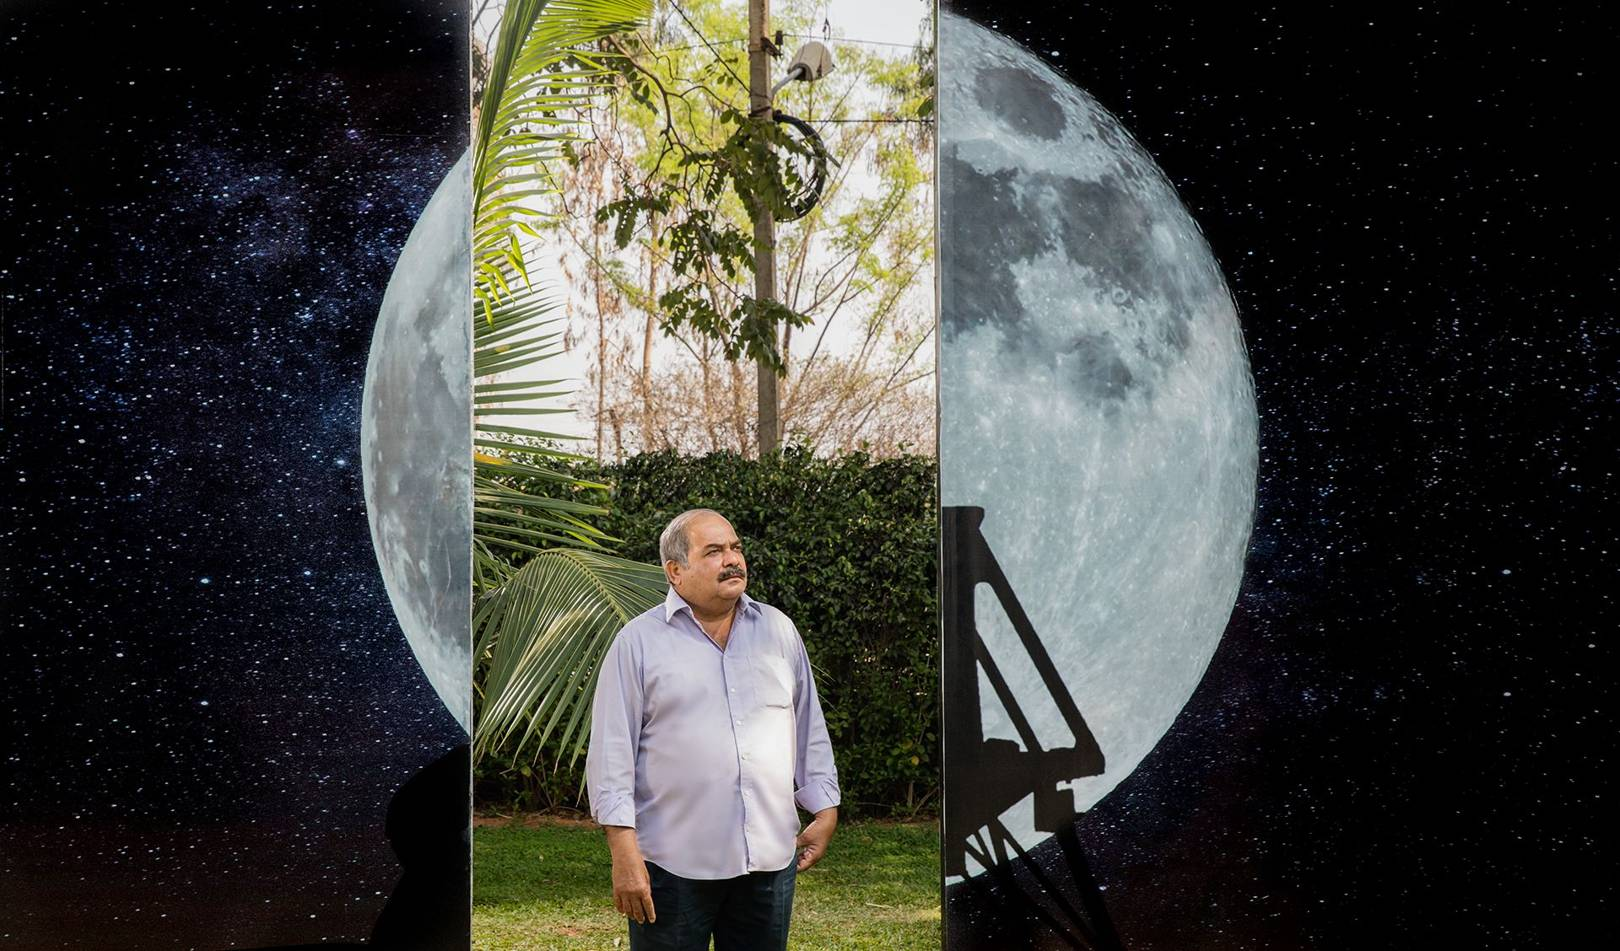 India's Moon Shot: Team Indus's unlikely quest to win the Lunar